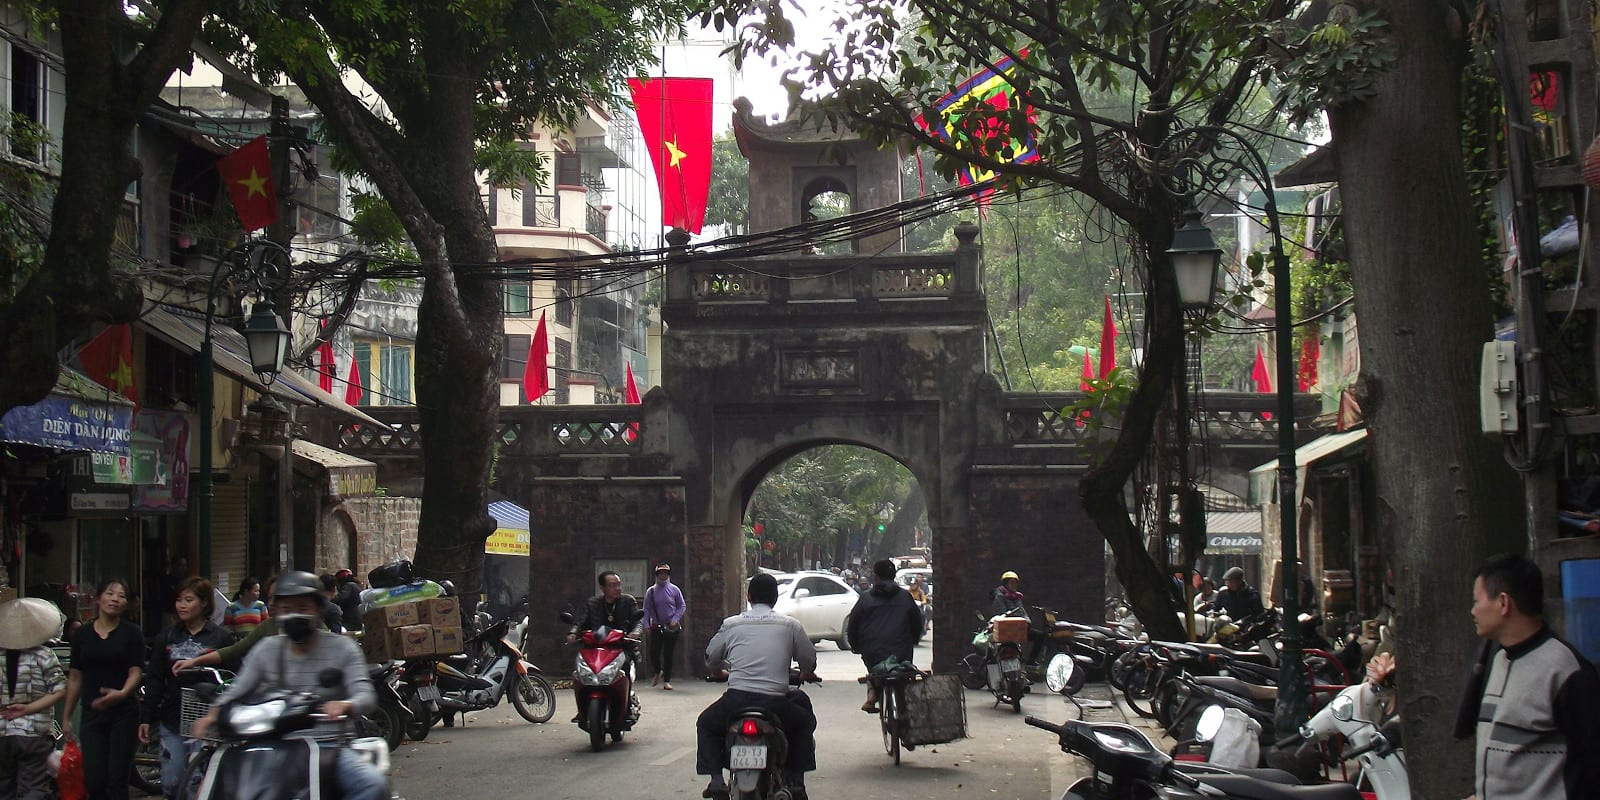 Hanoi in February